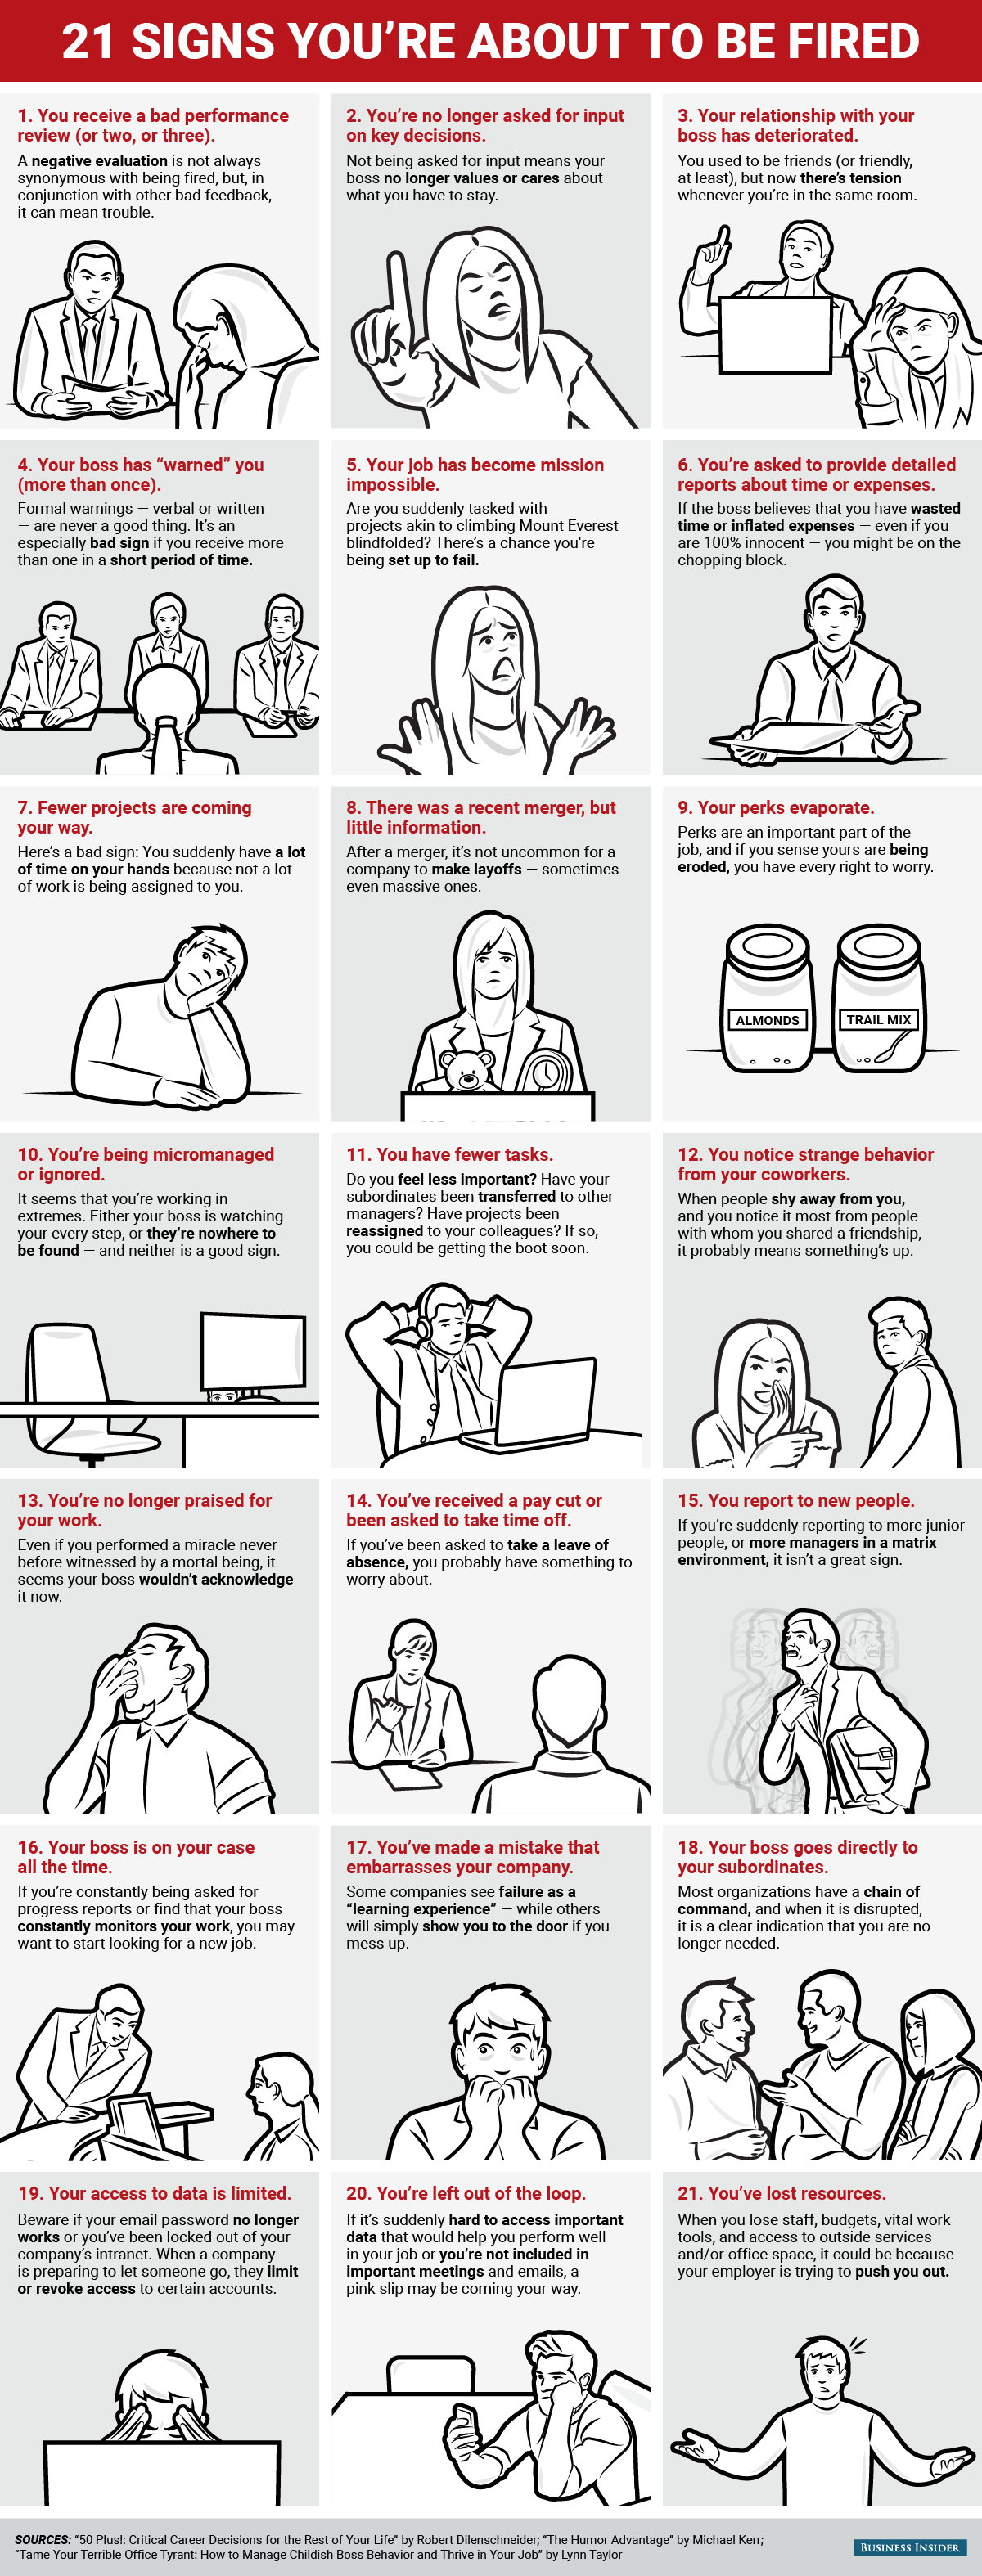 243666809a4a022a8712e02cf7d5462c - How To Ask Your Boss If You Are Getting Fired